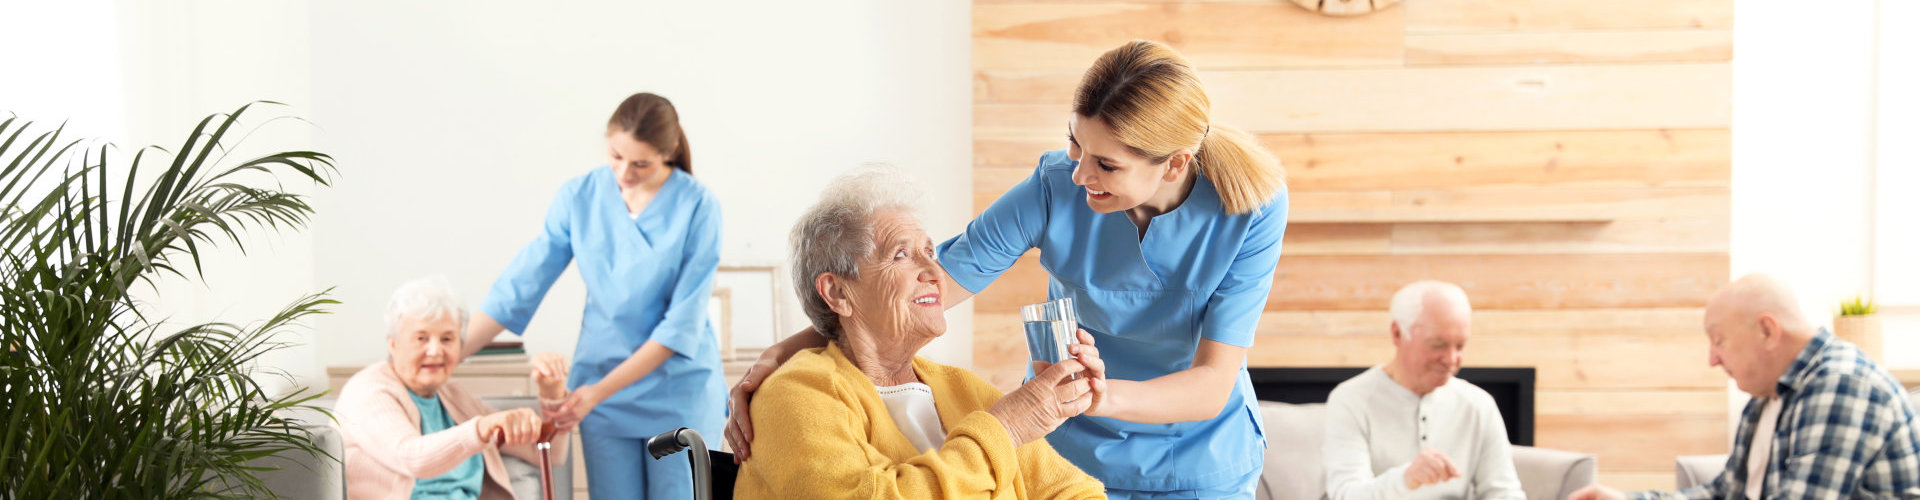 lady caregiver with senior people smiling